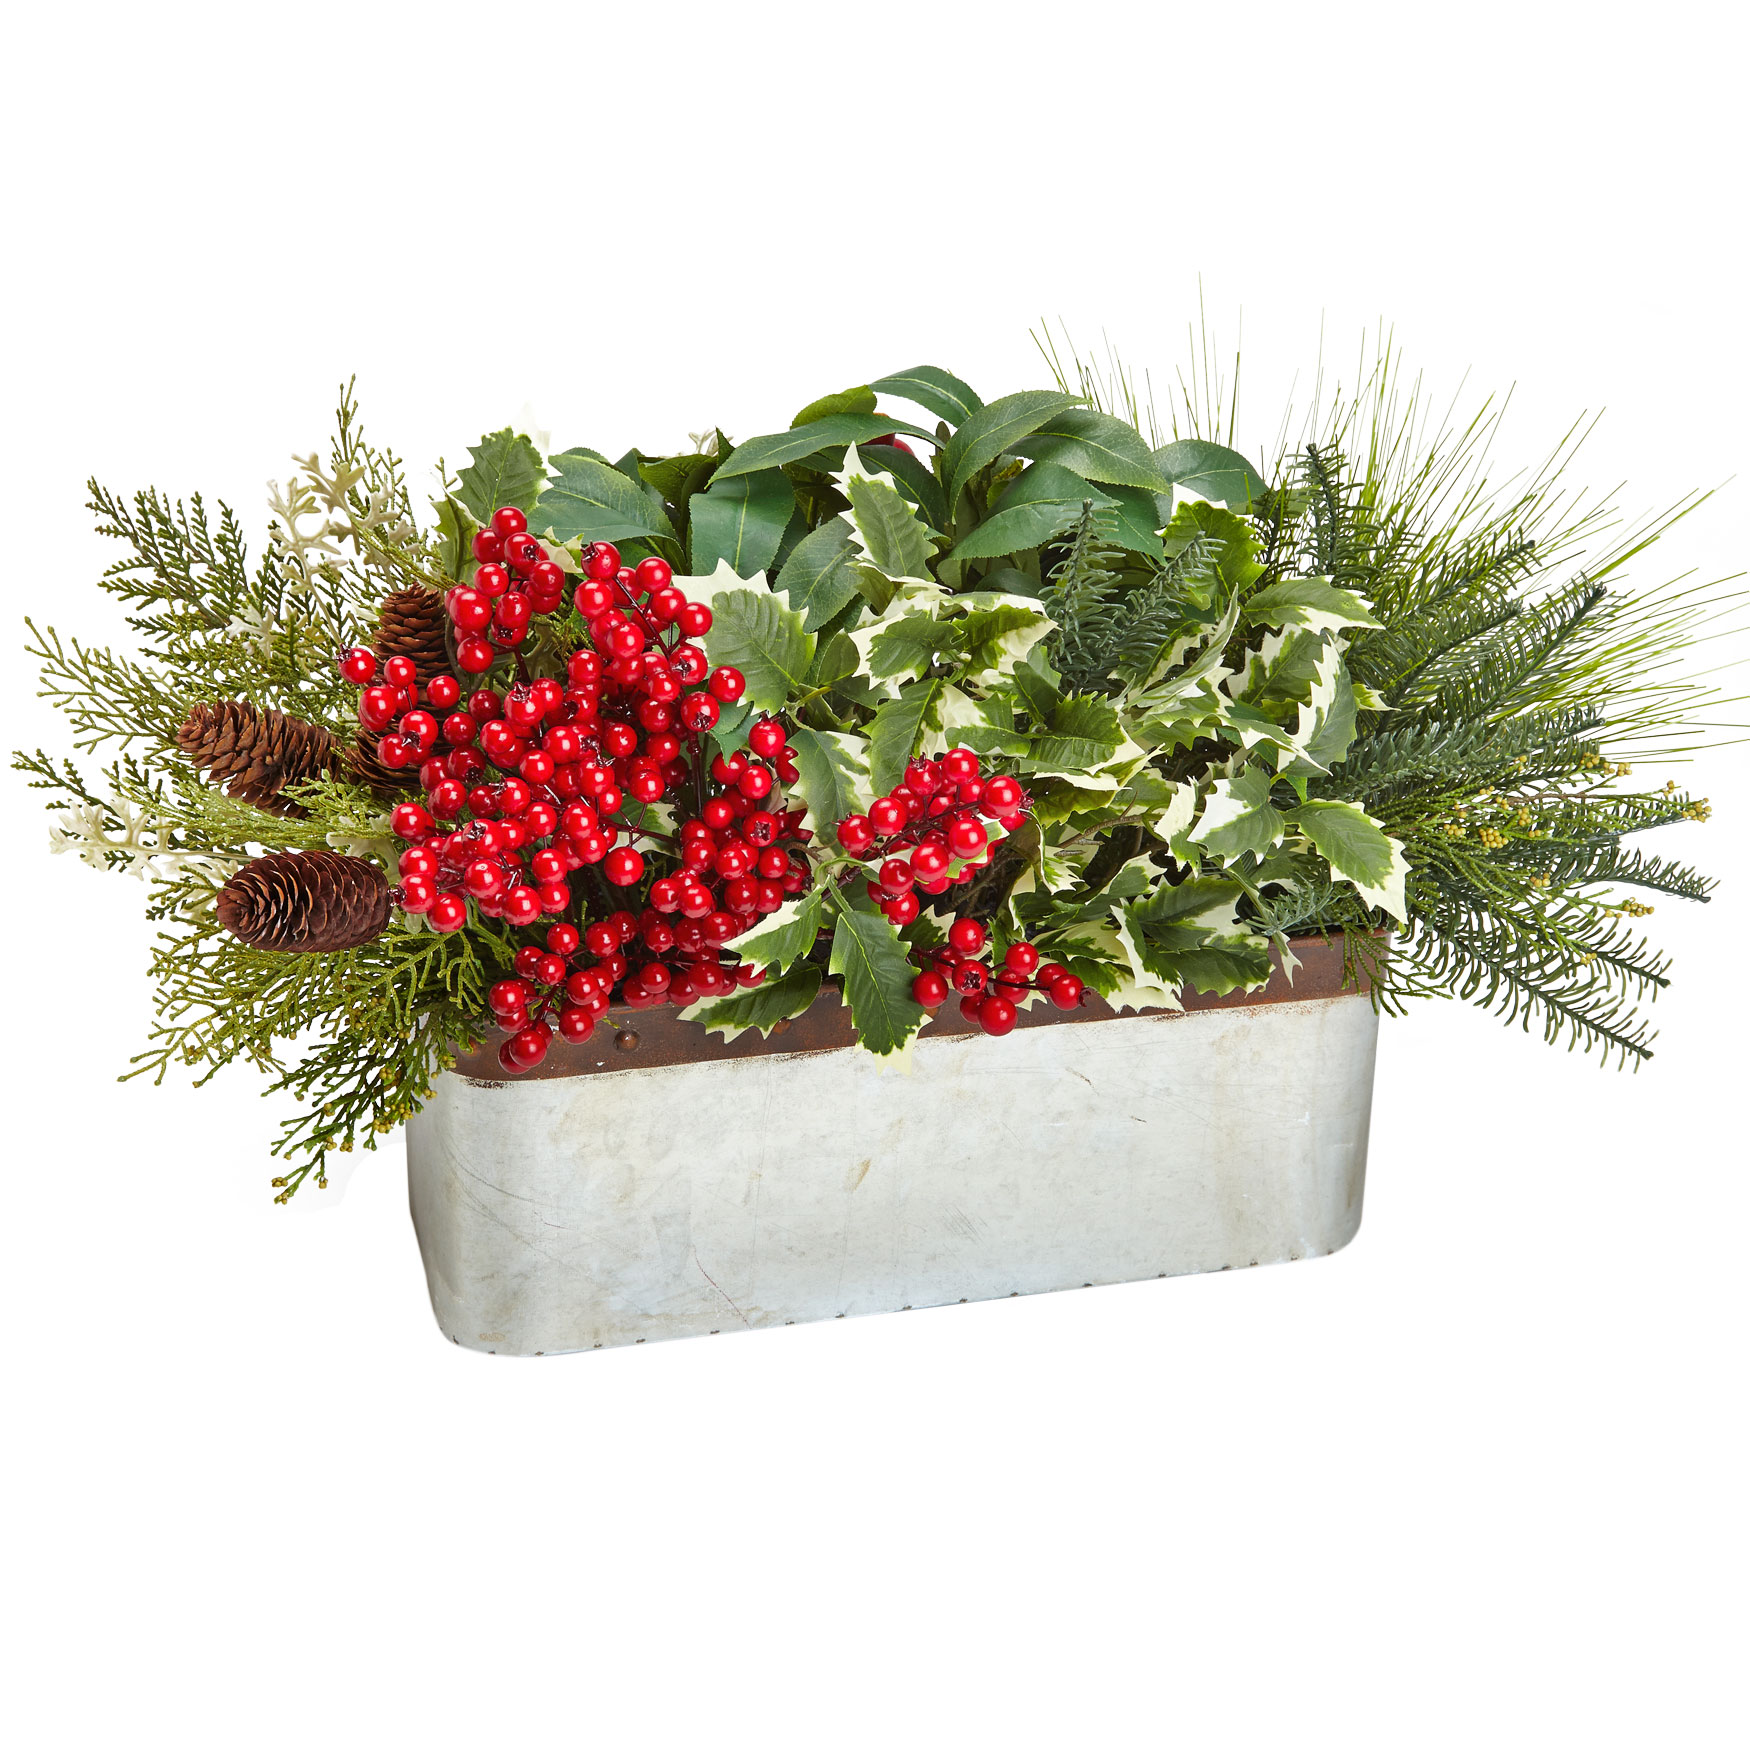 Mixed Berries Foliage Arrangement, MULTI